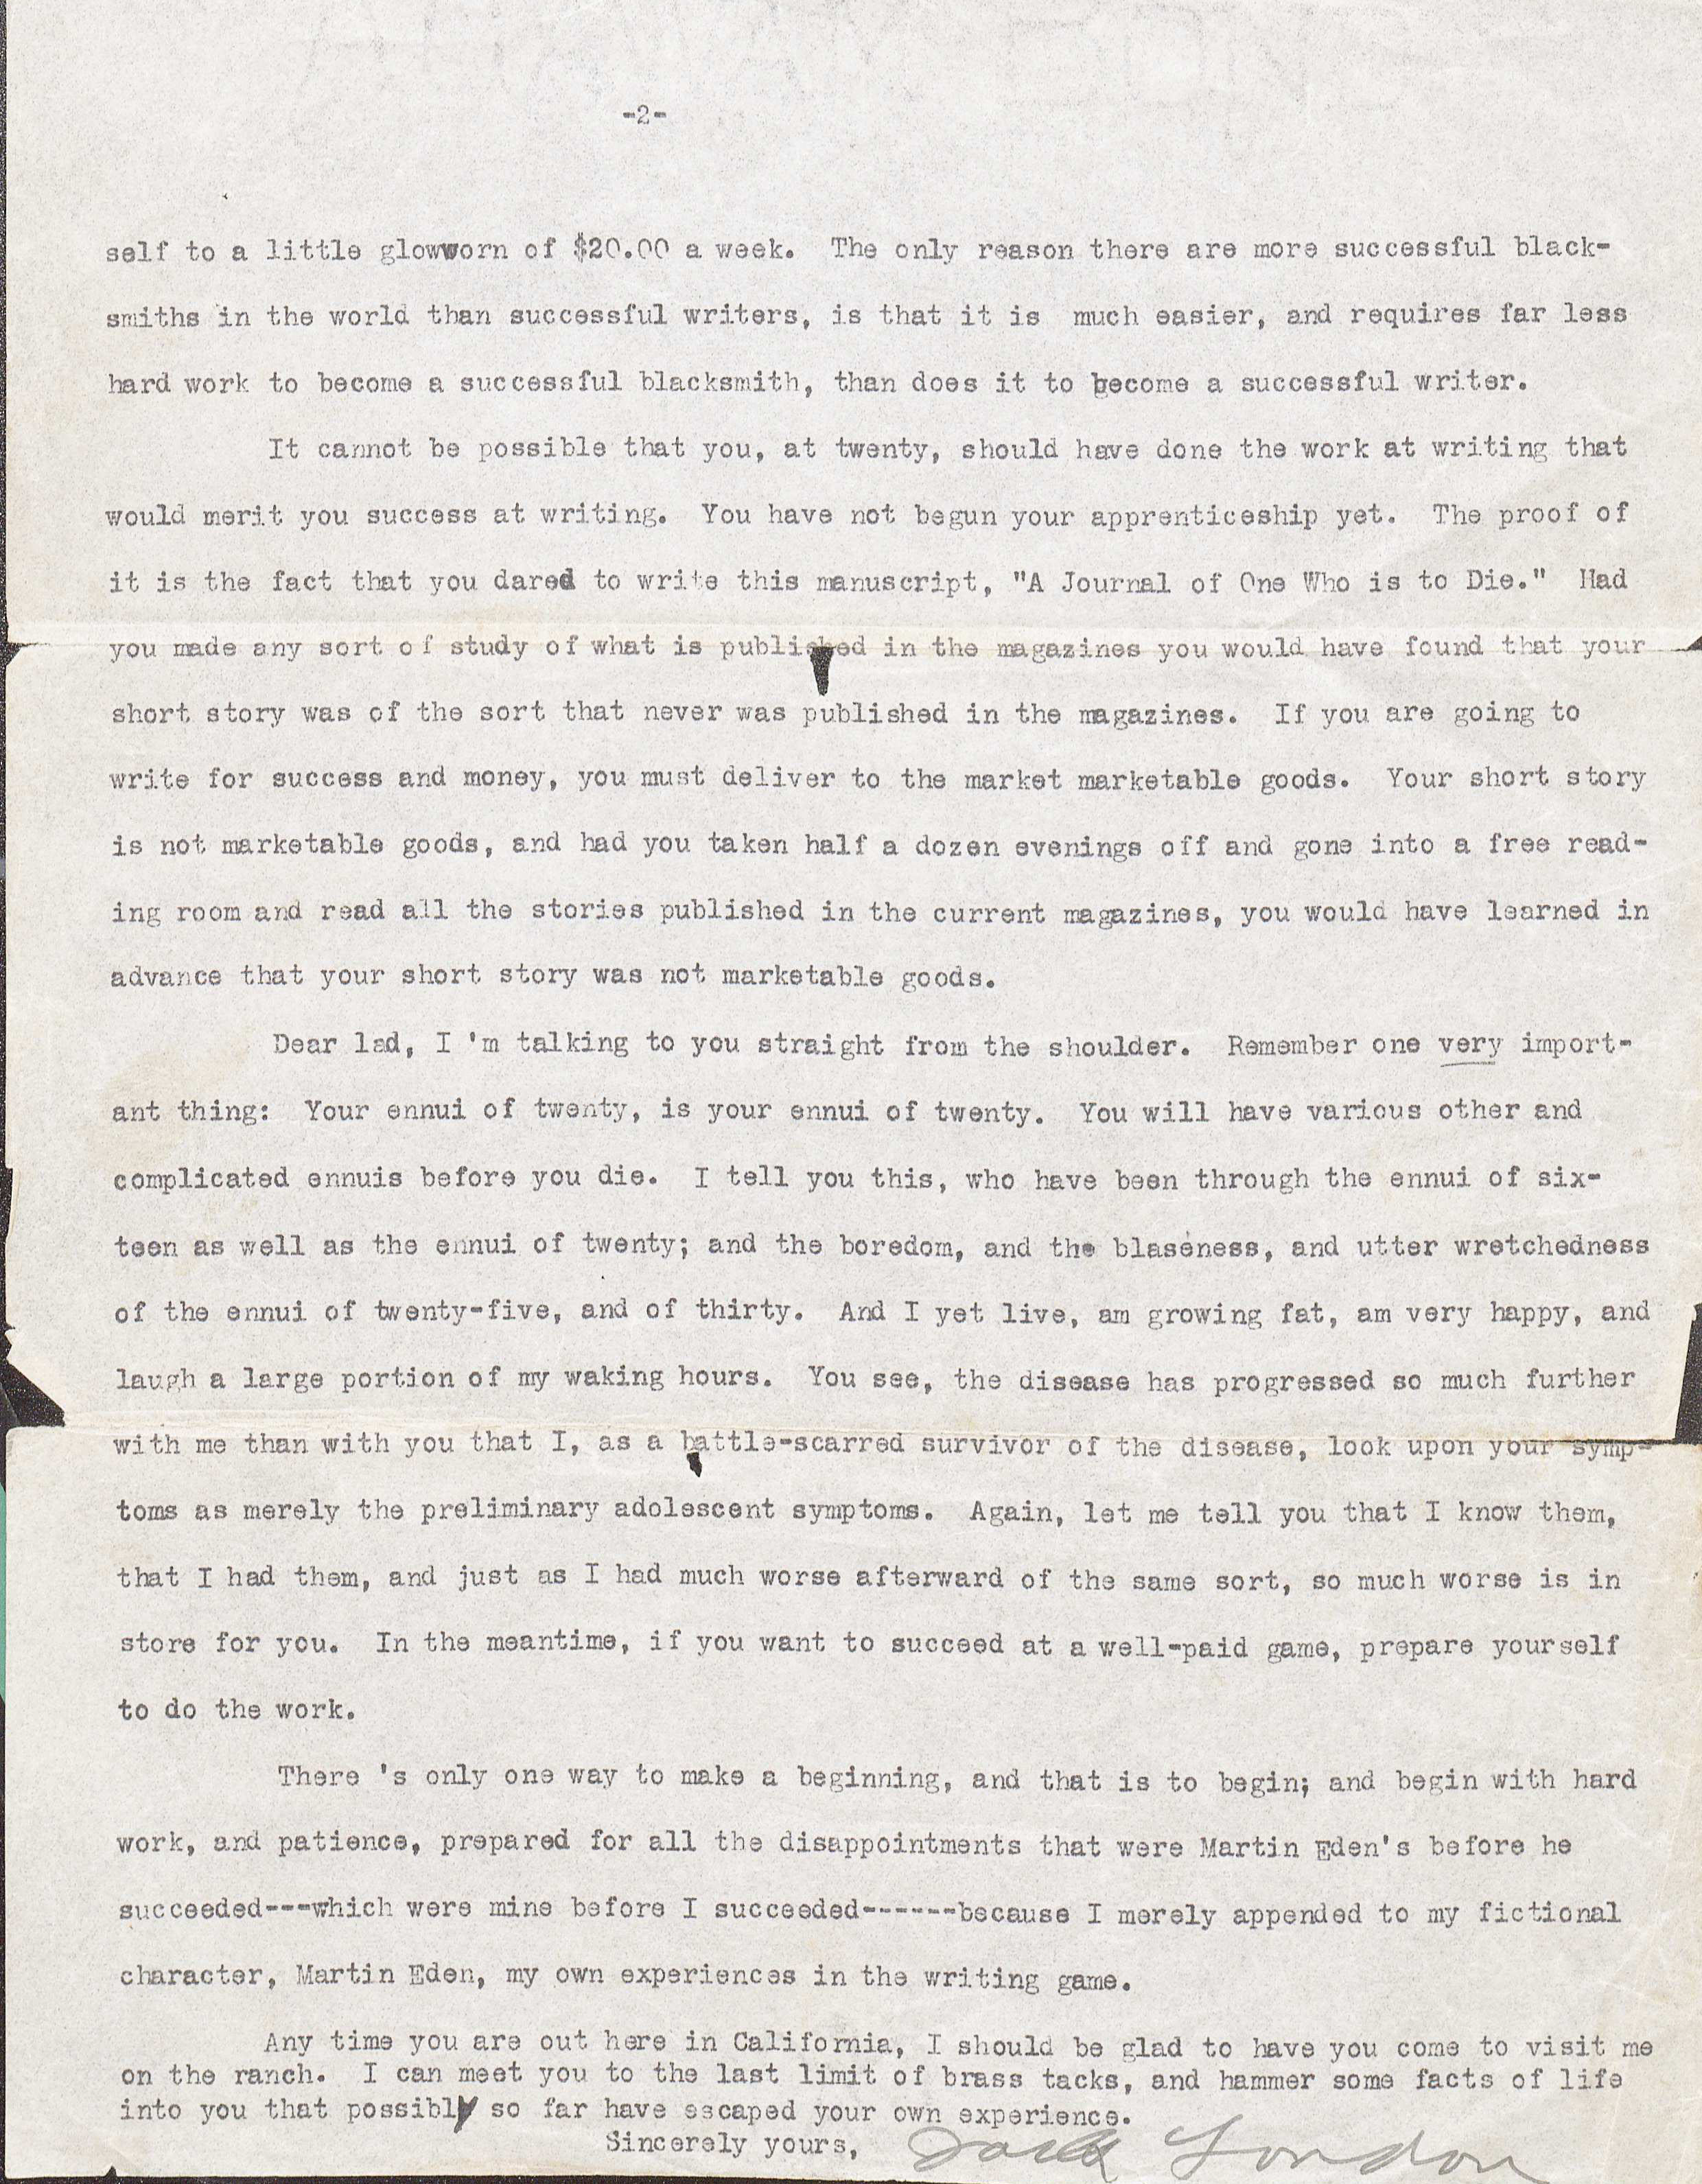 (MSS 6240. Clifton Waller Barrett Library of American Literature. Image by Caroline Newcomb)